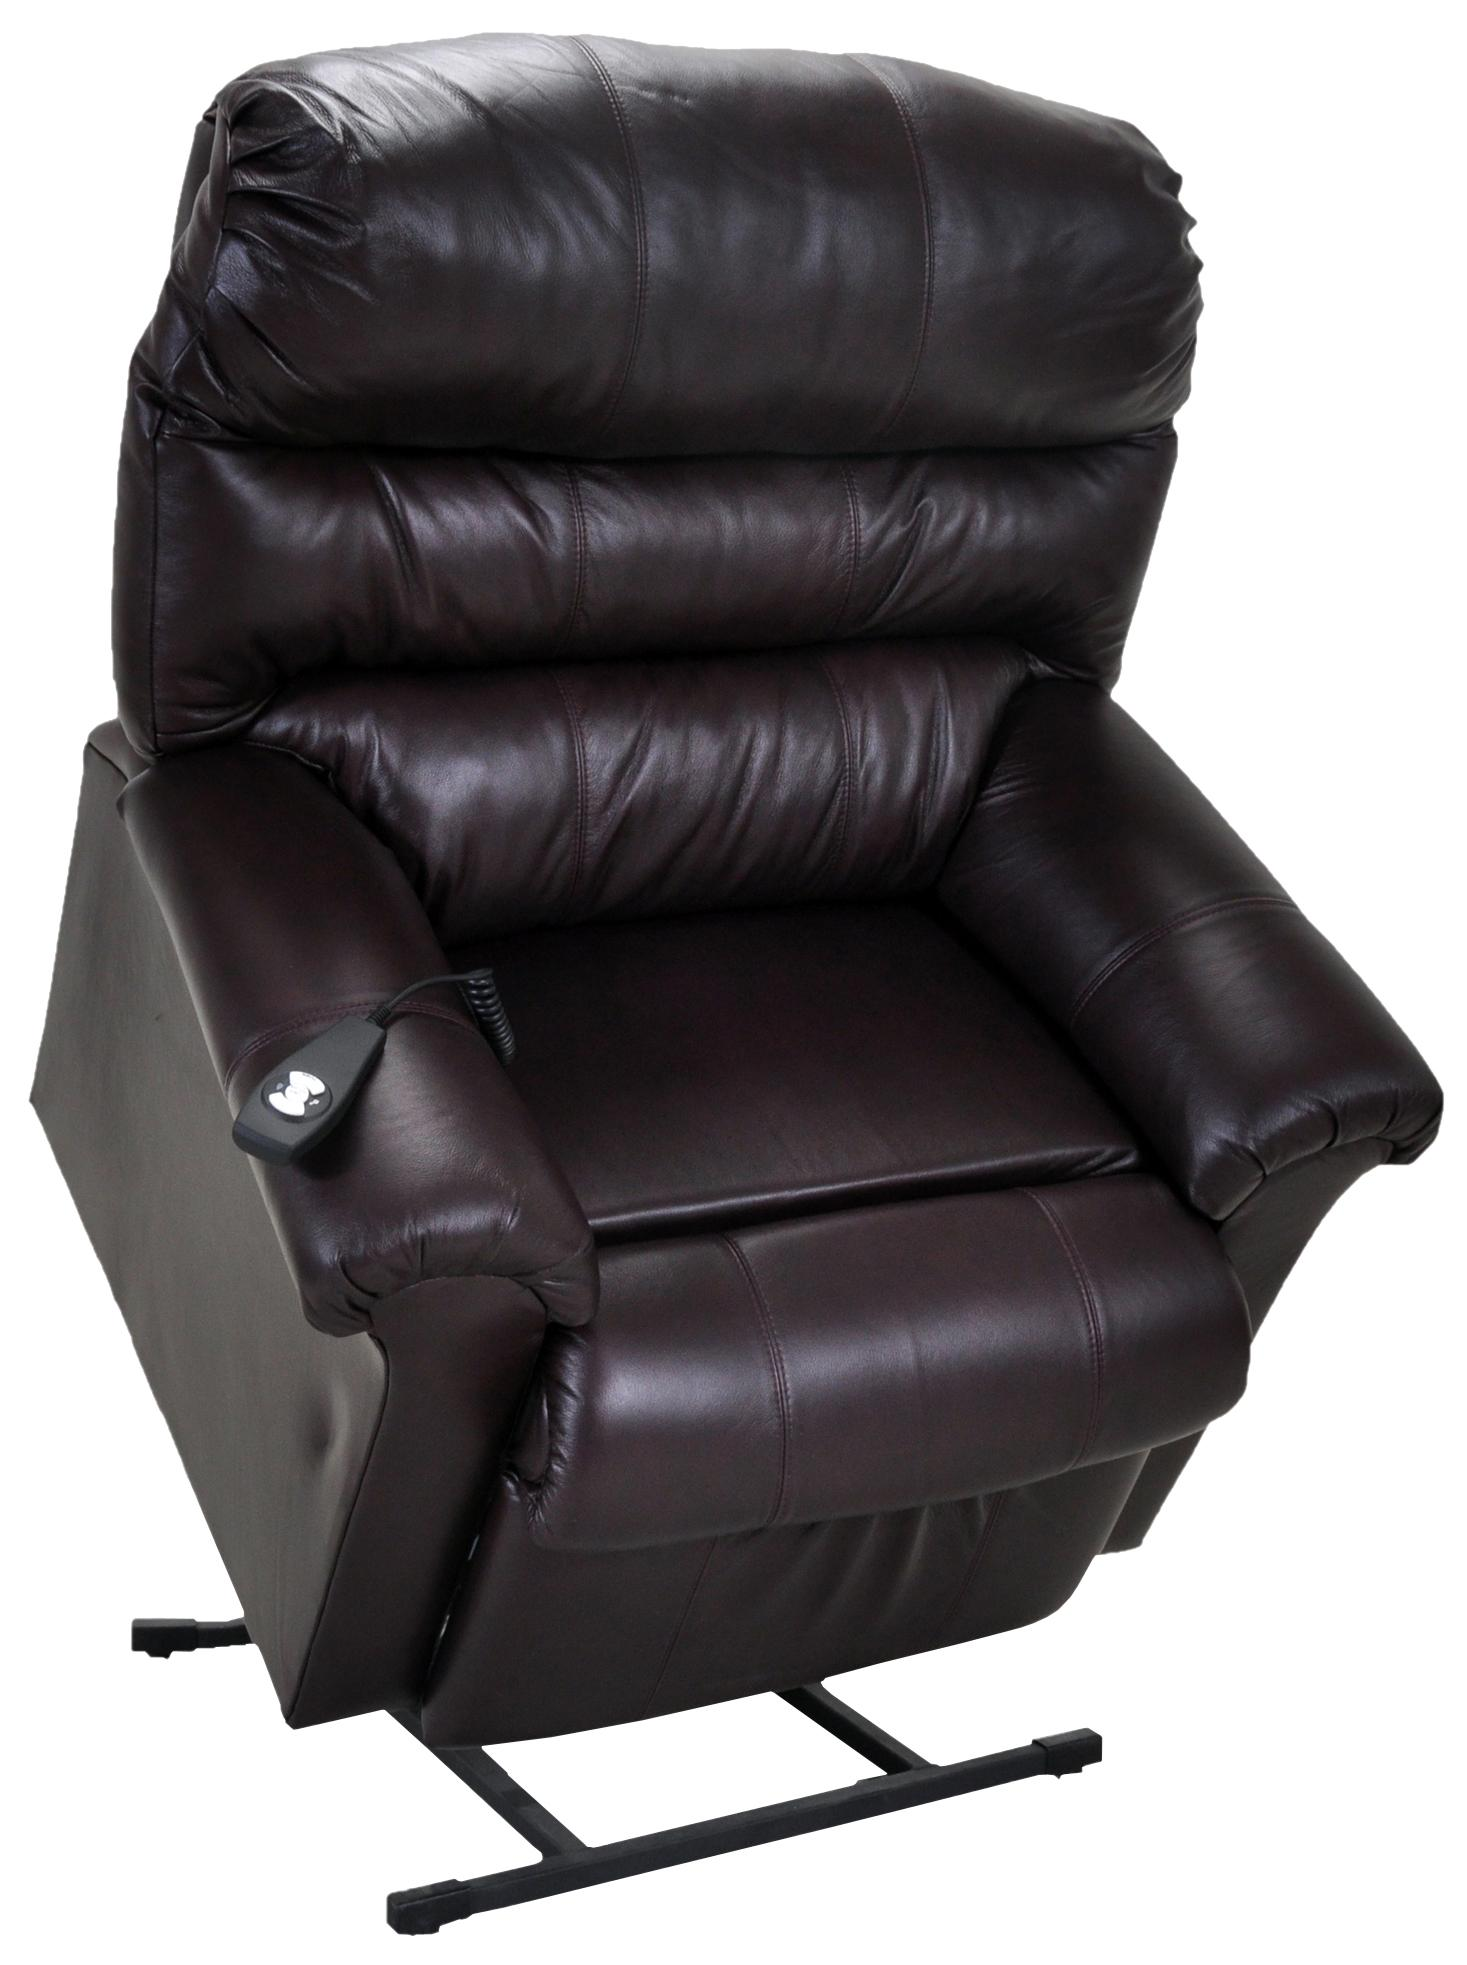 Franklin Lift and Power Recliners Chocolate Leather Lift Chair